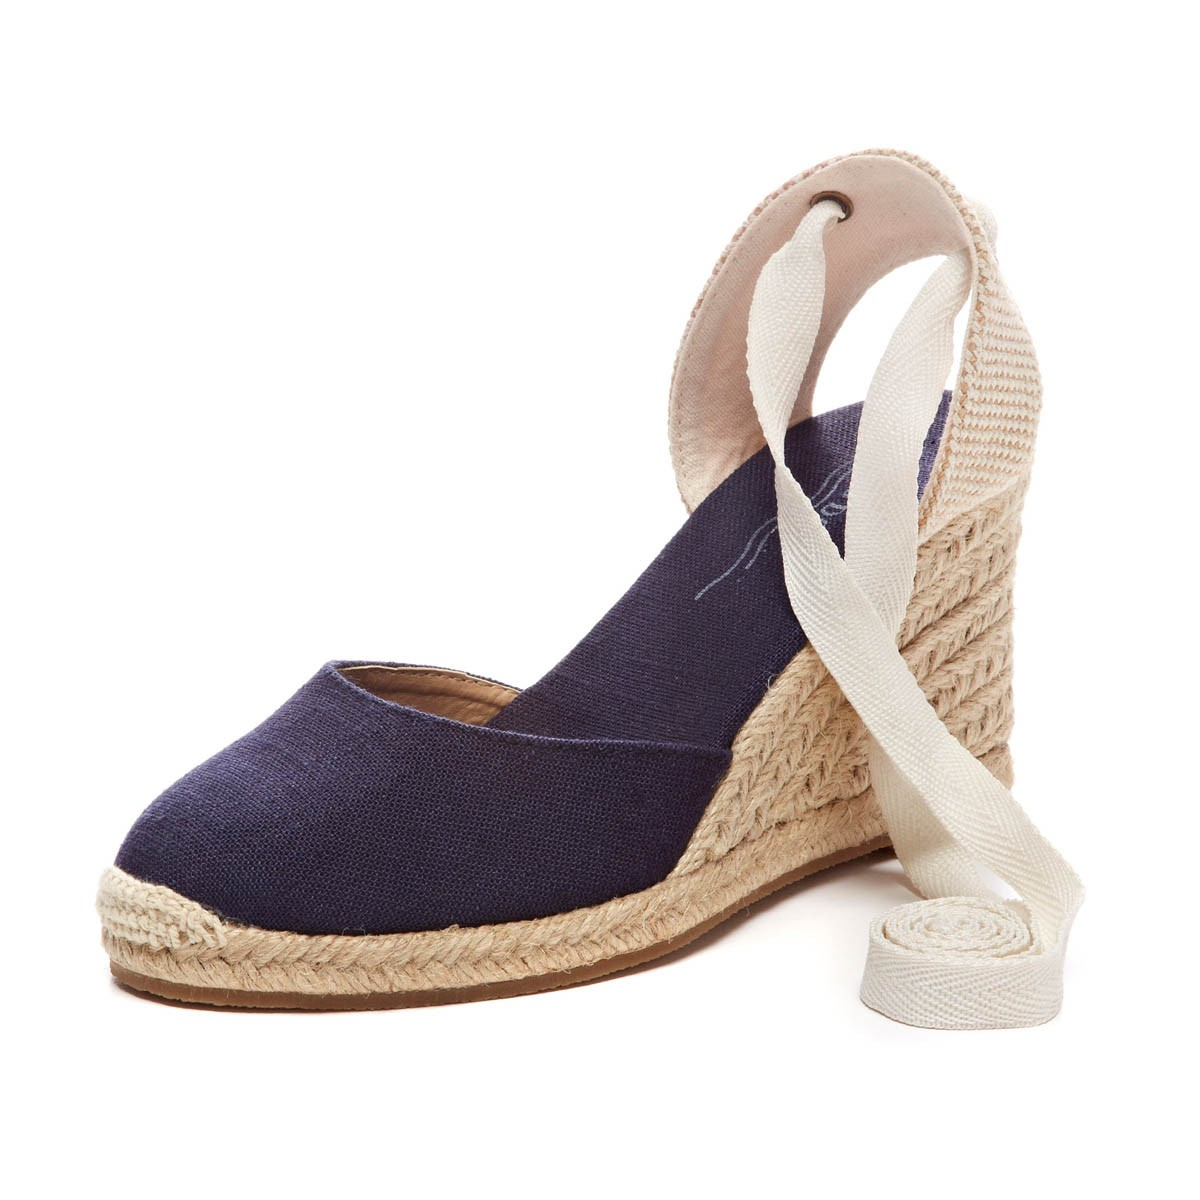 24d58f8f482 Lyst - Soludos Tall Wedge in Blue